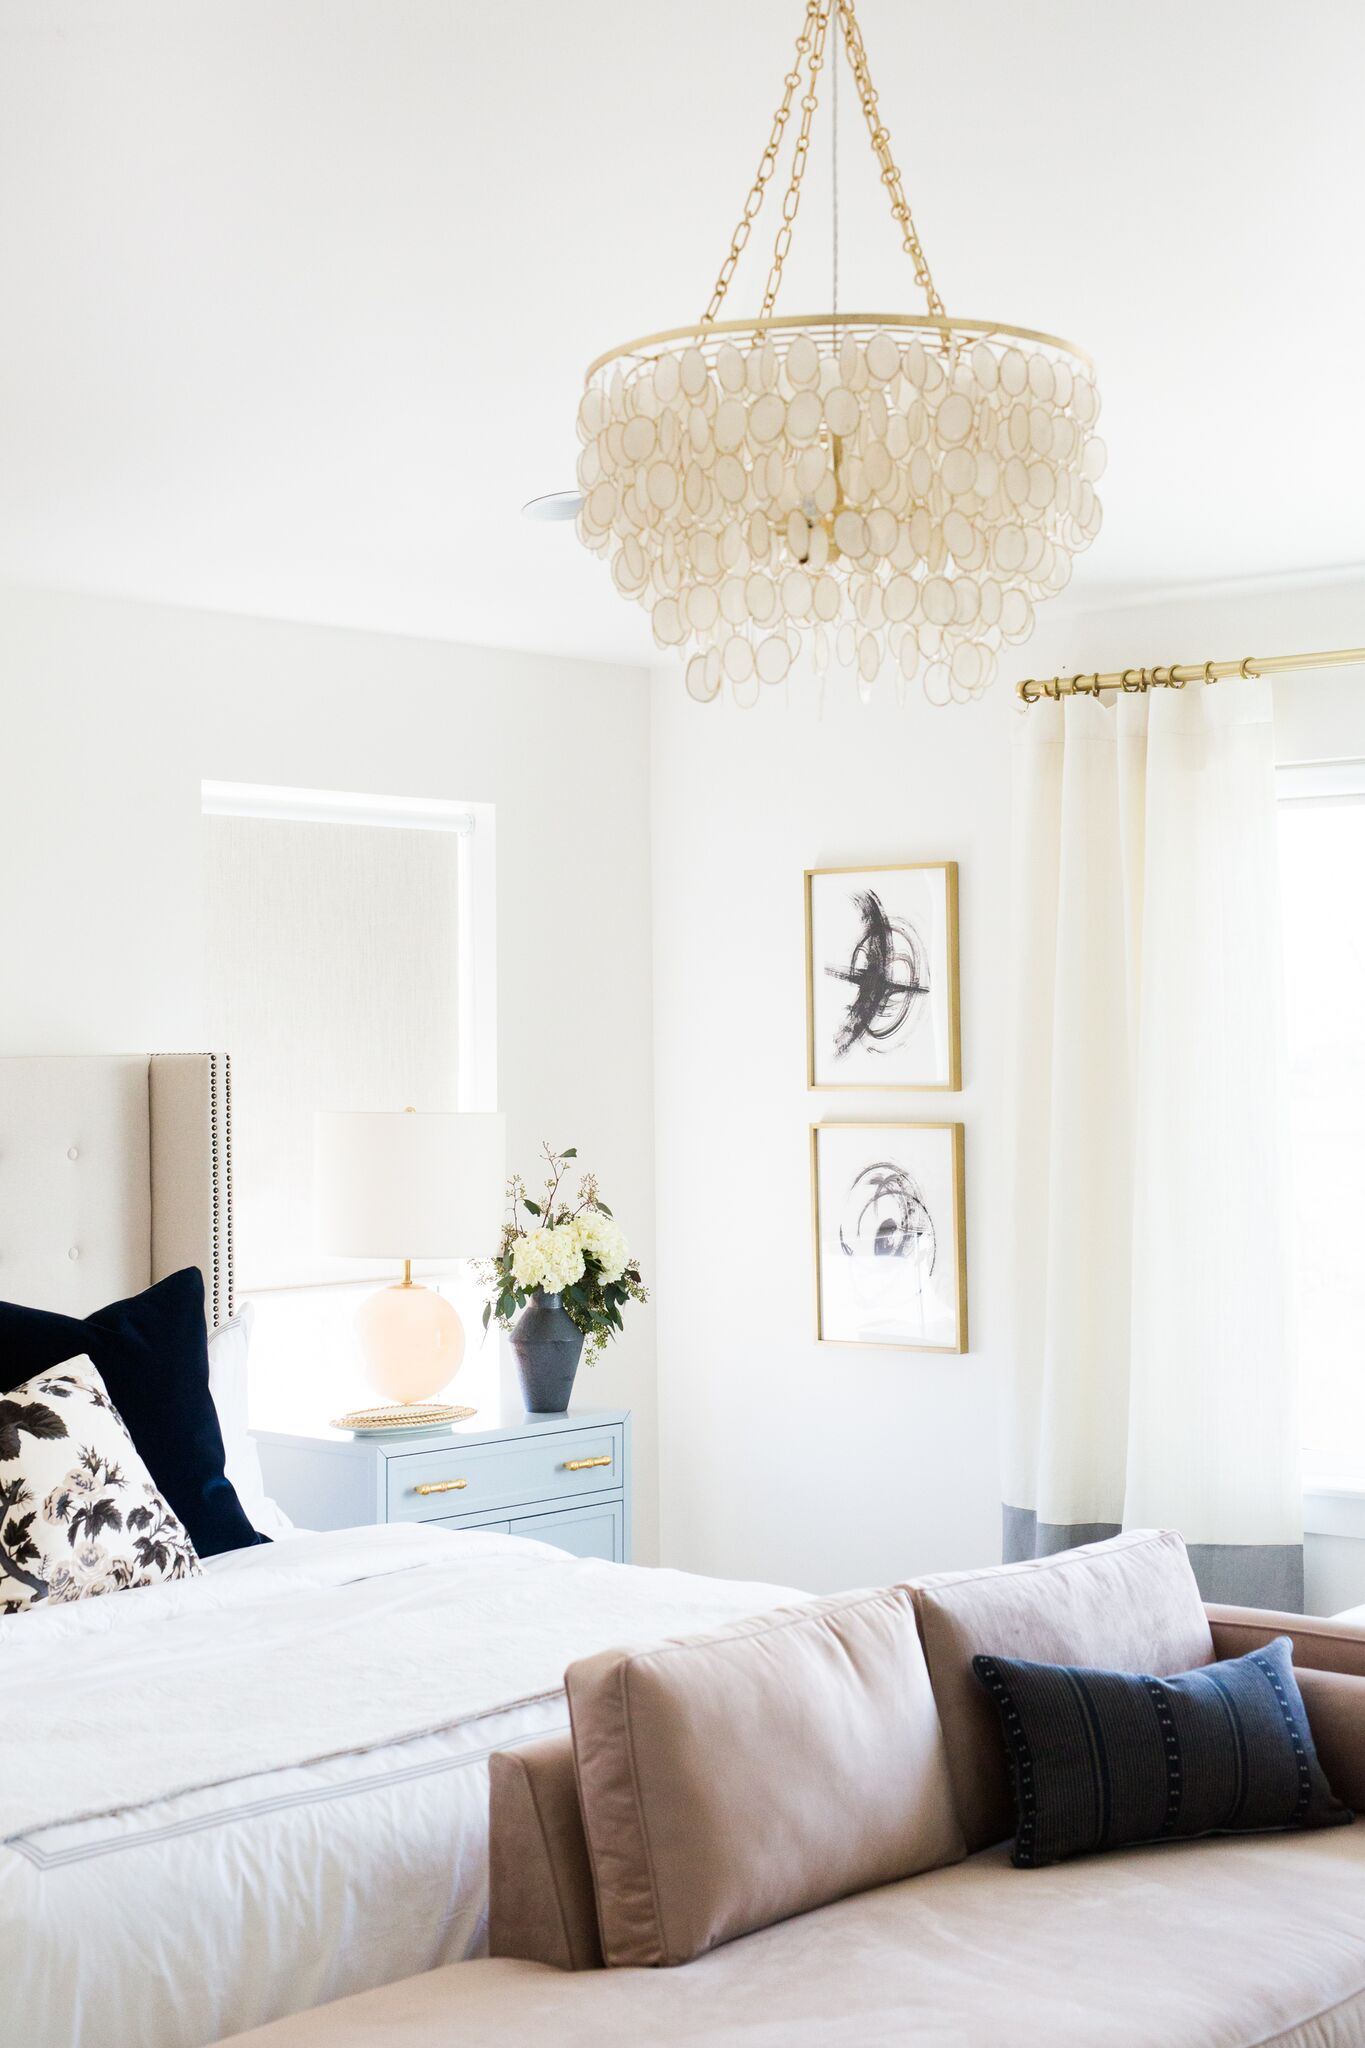 Side of bed with large light fixture and pictures in bedroom